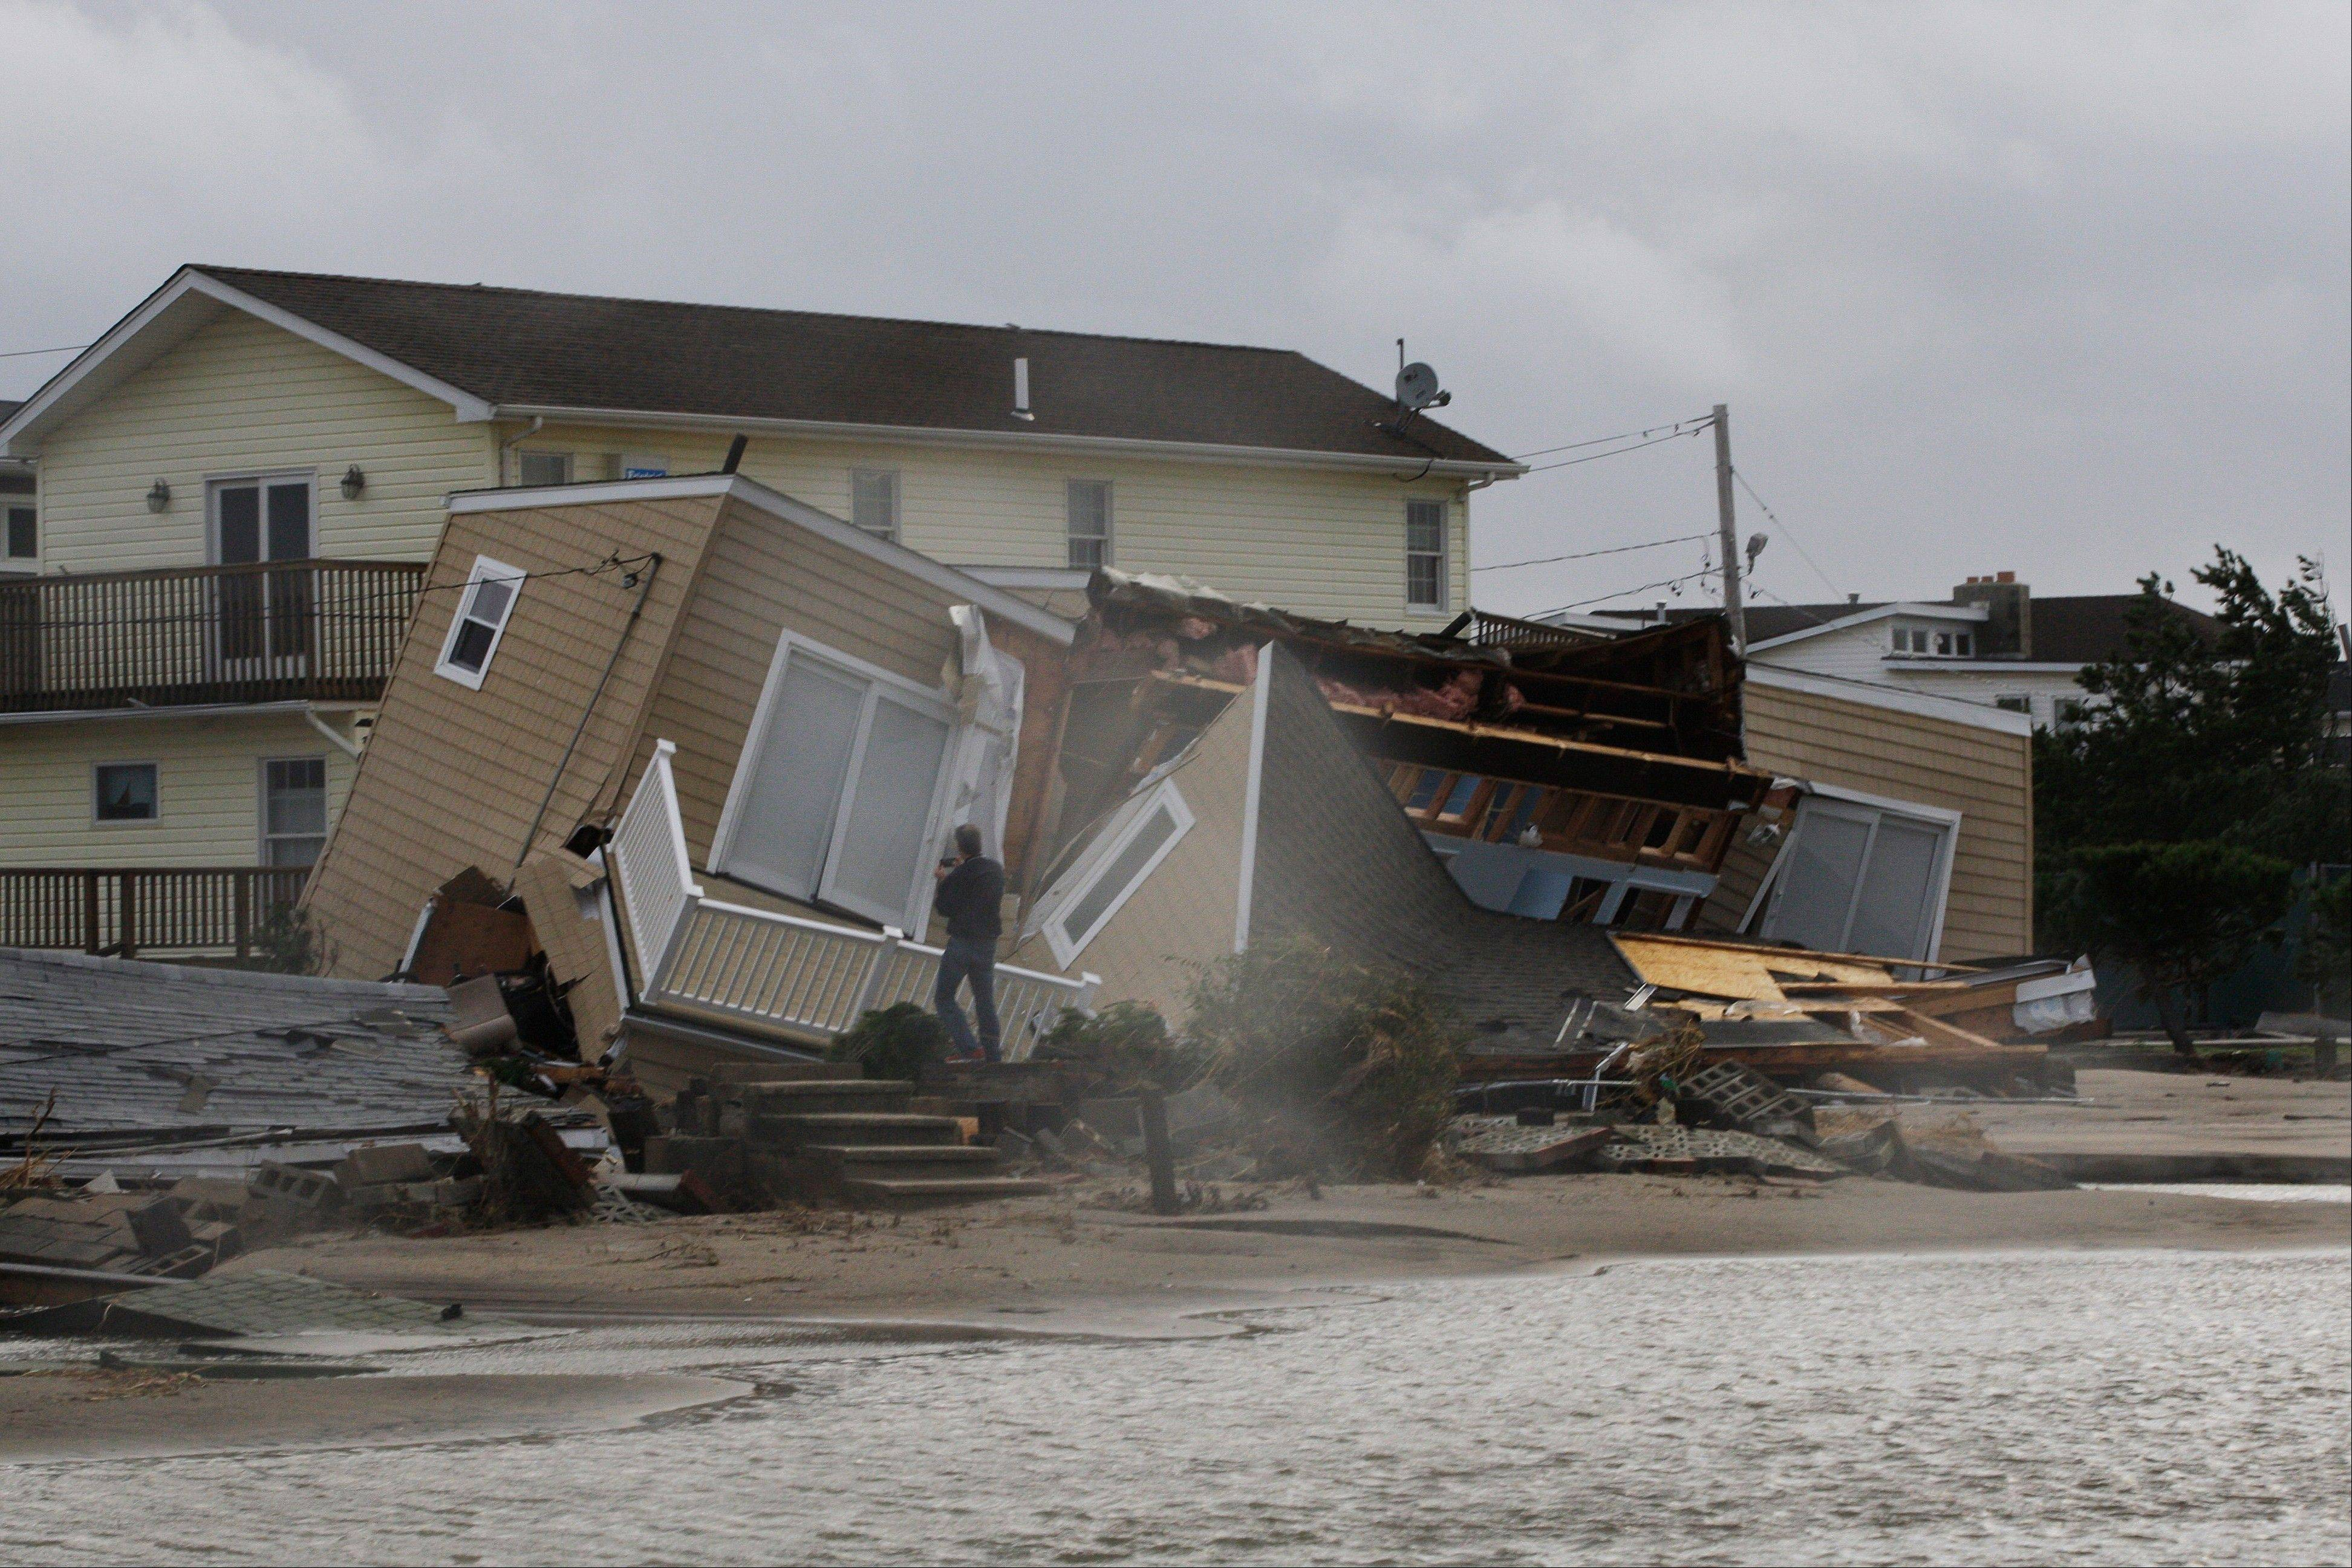 A man photographs a home damaged during a storm at Breezy Point in the New York City borough of Queens Tuesday, Oct. 30, 2012. The fire destroyed between 80 and 100 houses Monday night in an area flooded by the superstorm that began sweeping through earlier.